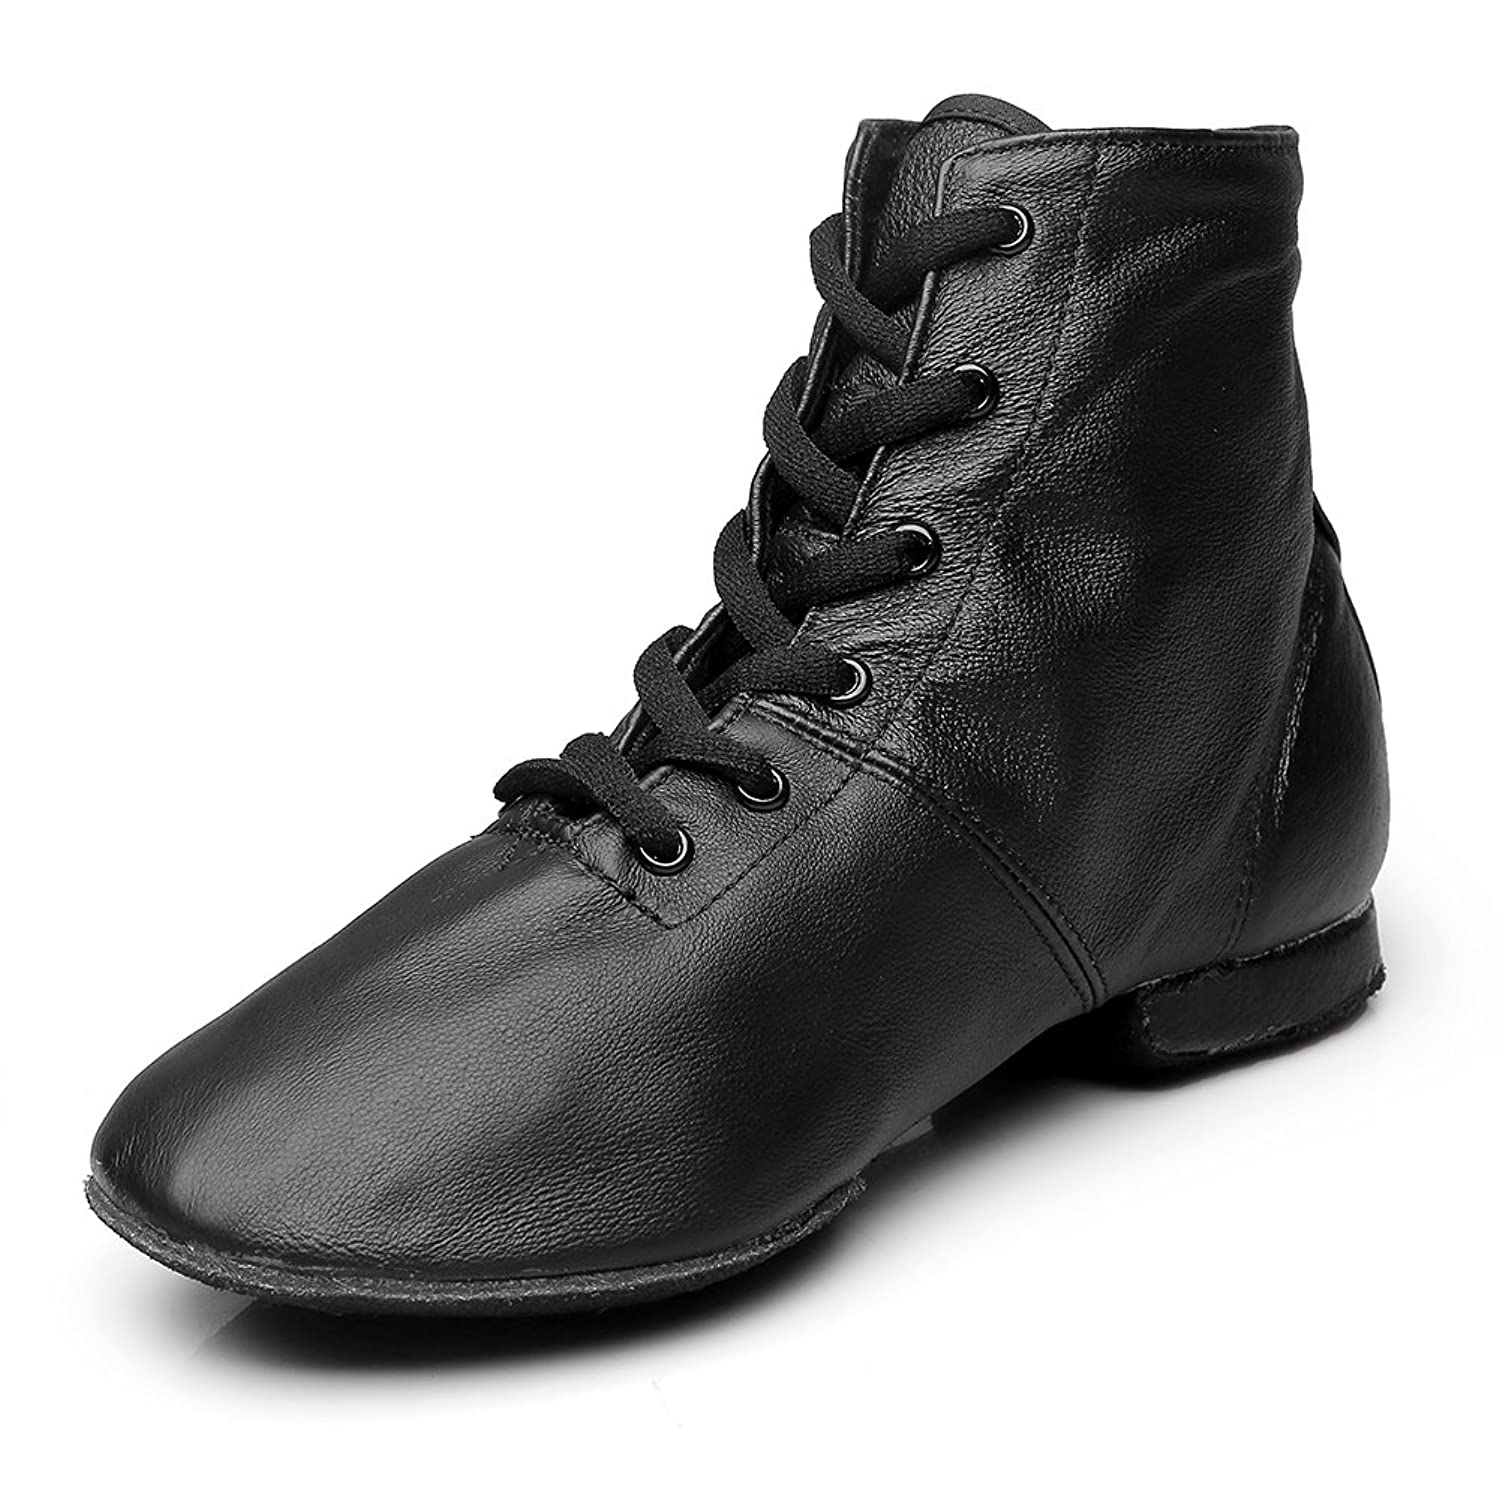 Vintage Boots- Buy Winter Retro Boots MSMAX Professional Soft Leather Unisex Dance Shoe $28.99 AT vintagedancer.com